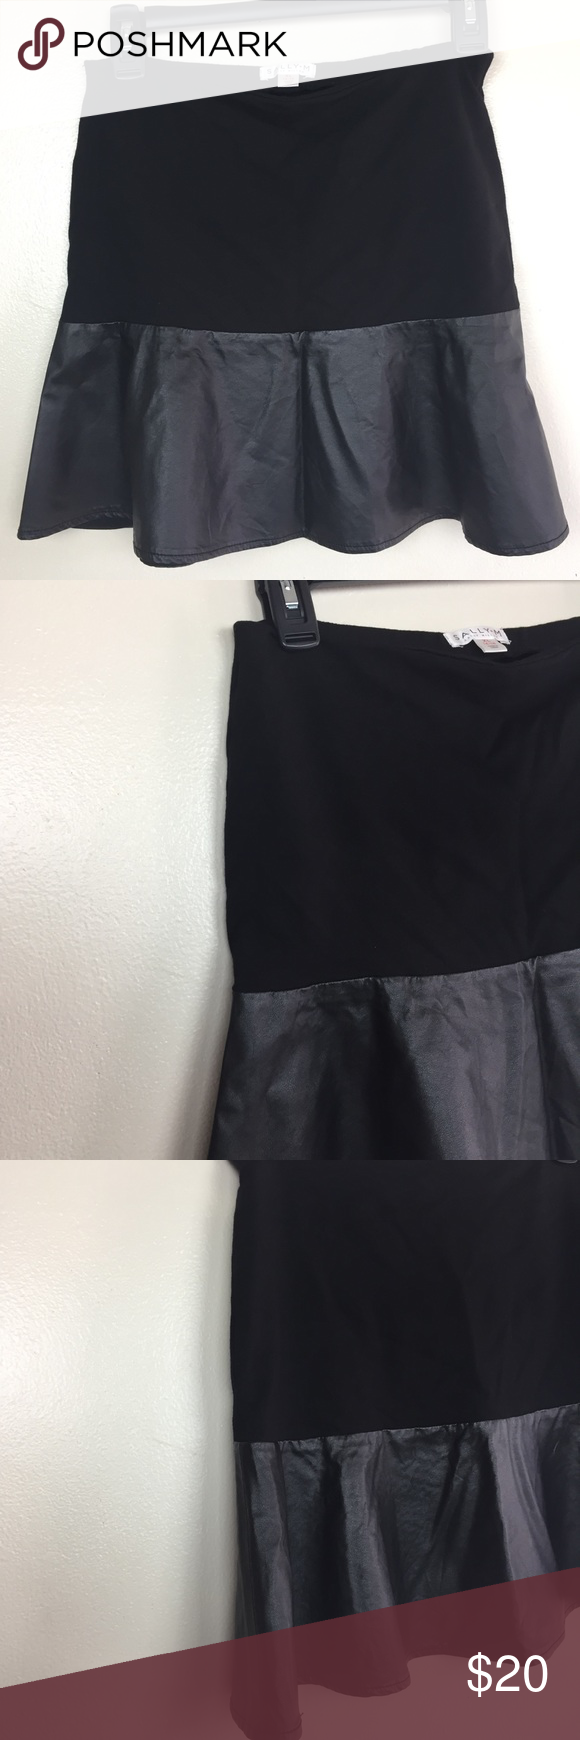 "Sally Miller | Faux Leather Mini Skirt Women's mini skater skirt •Size: XL on tag, but fits more like a medium •Brand: Sally Miller •Color: black  •Faux Leather do not stretch, but the fabric has stretched to it •The fabric is black and the faux leather is a shiny black •Has a sheer blouse like material to line the skirt •Fabric & Faux Leather is Soft  •Two tone skirt •Elastic at waist band  •Pre-owned, excellent condition •Measurement: width 13 1/2"" at waist, width 18"" (at start of leather), wi #sallymiller"